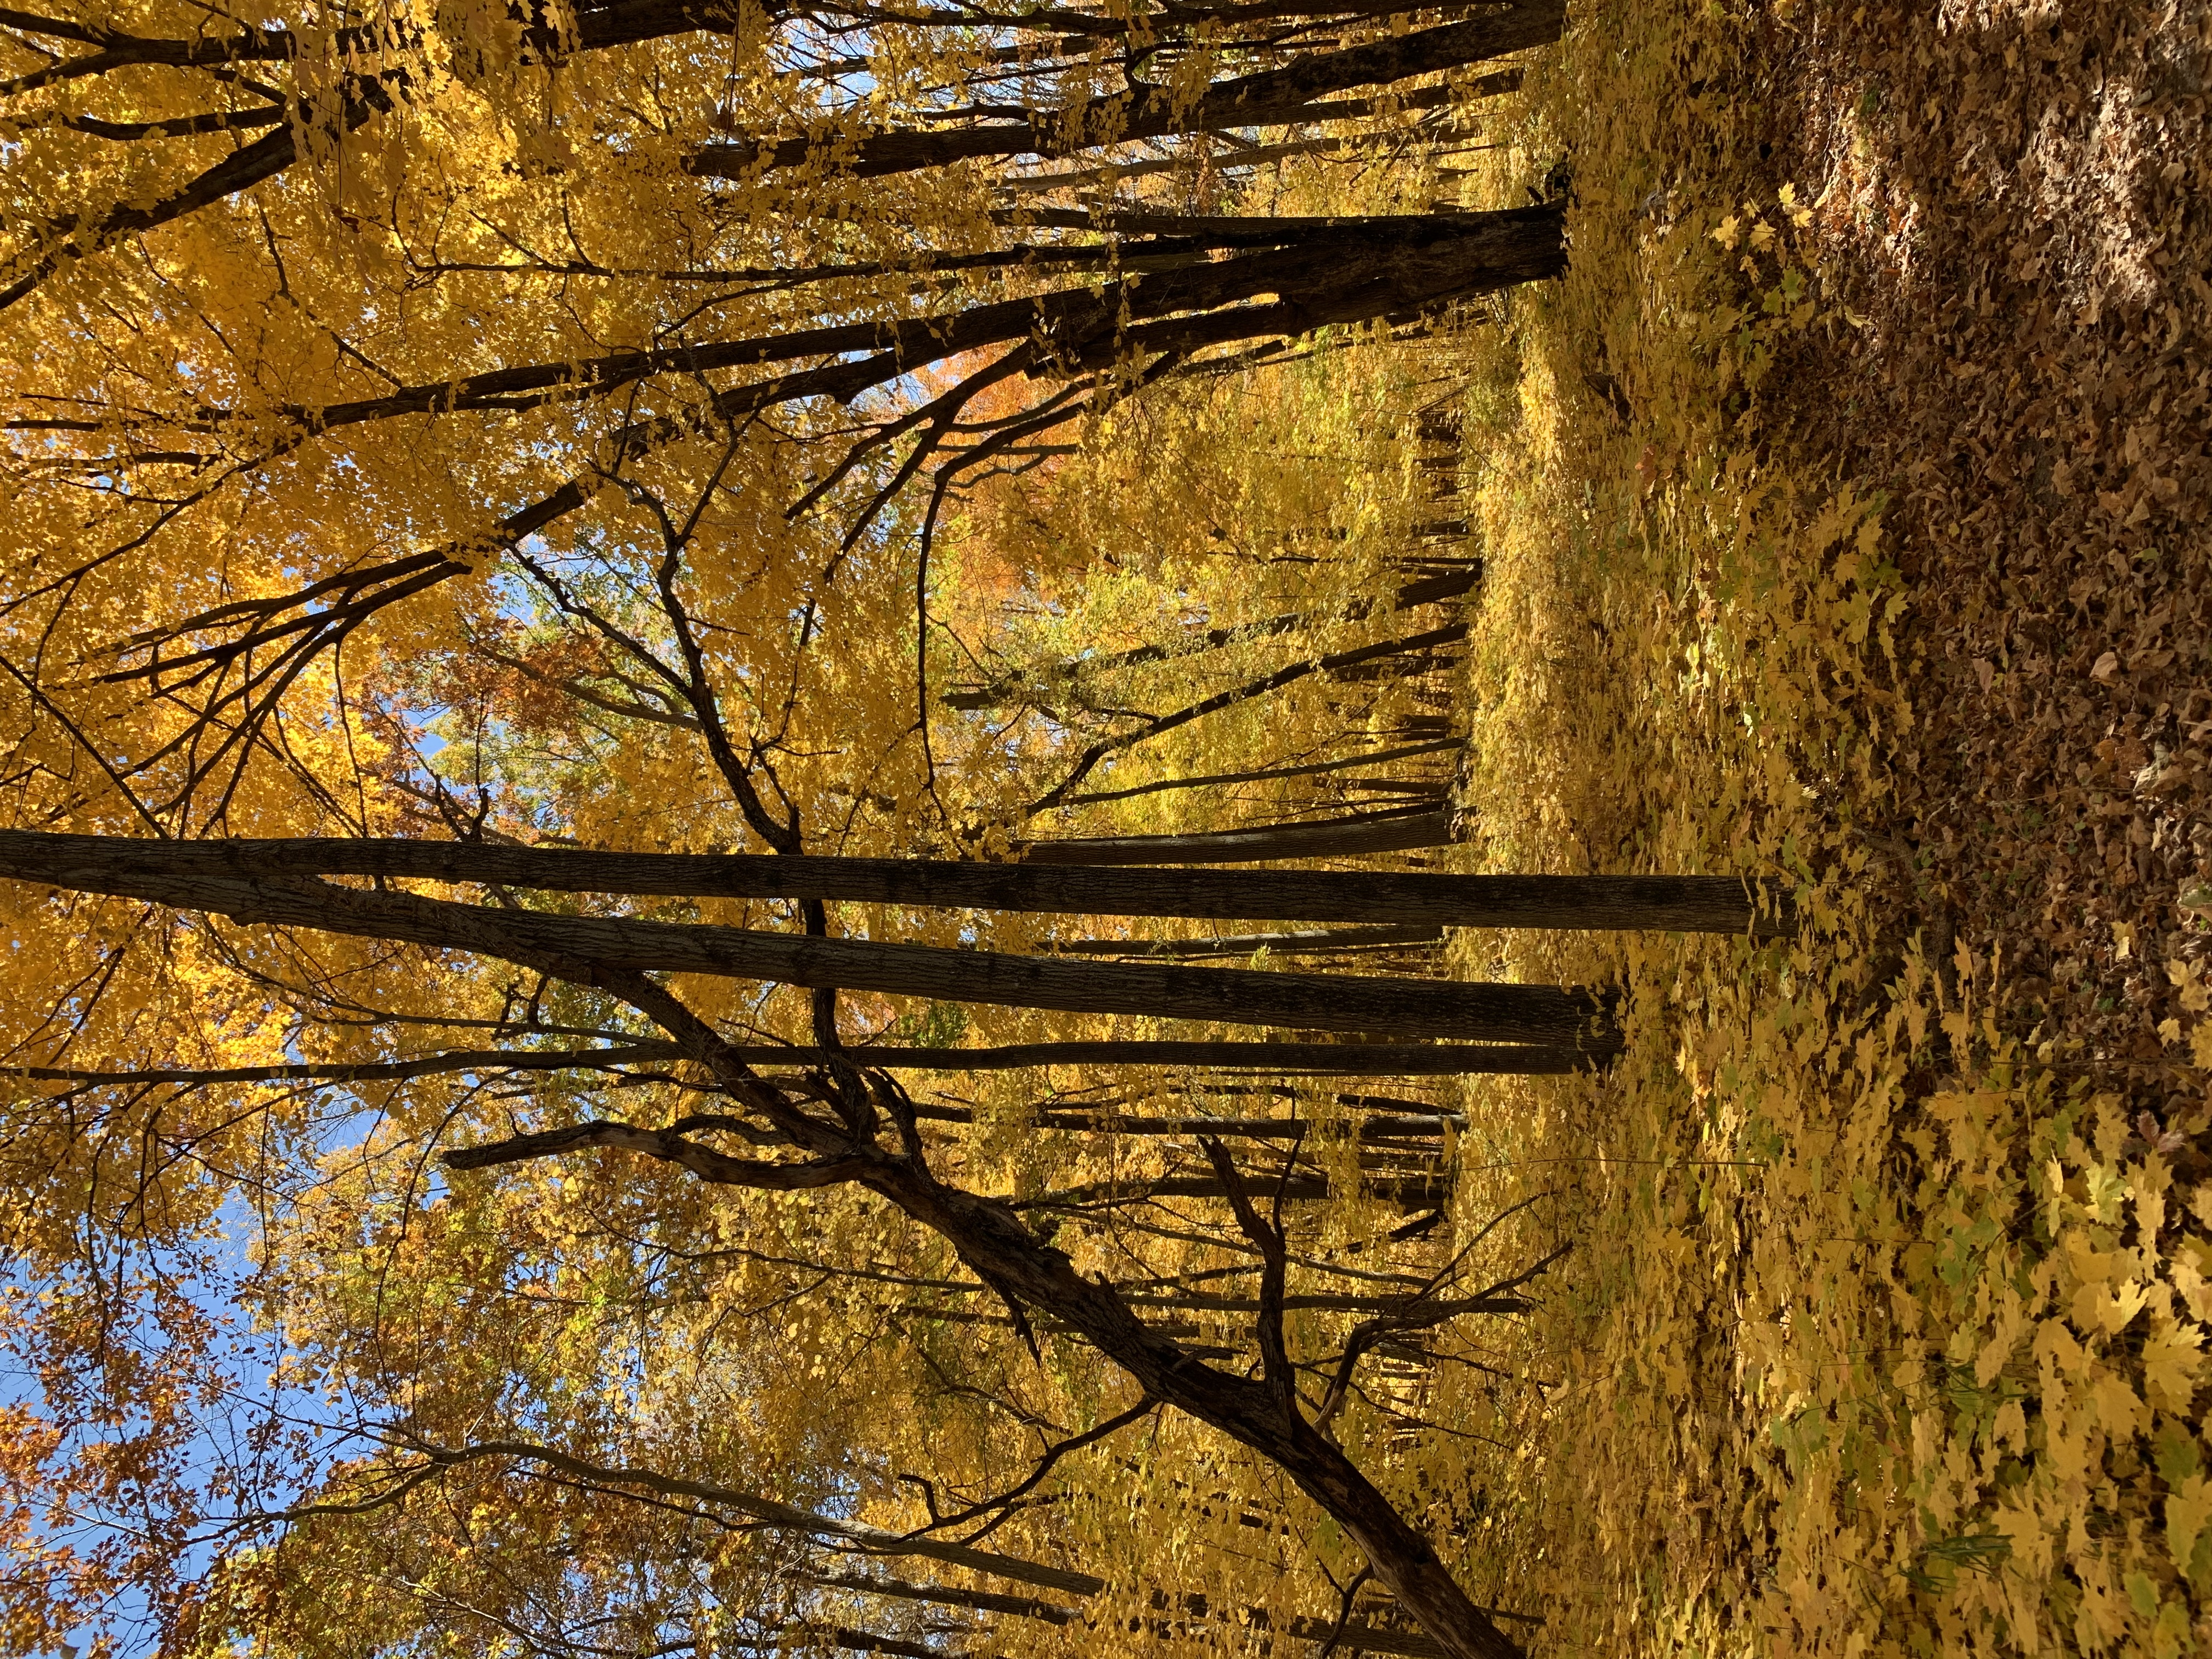 Picnic area that glows yellow from the sun reflecting the bright yellow leaves on the trees at Rice Lake State Park.